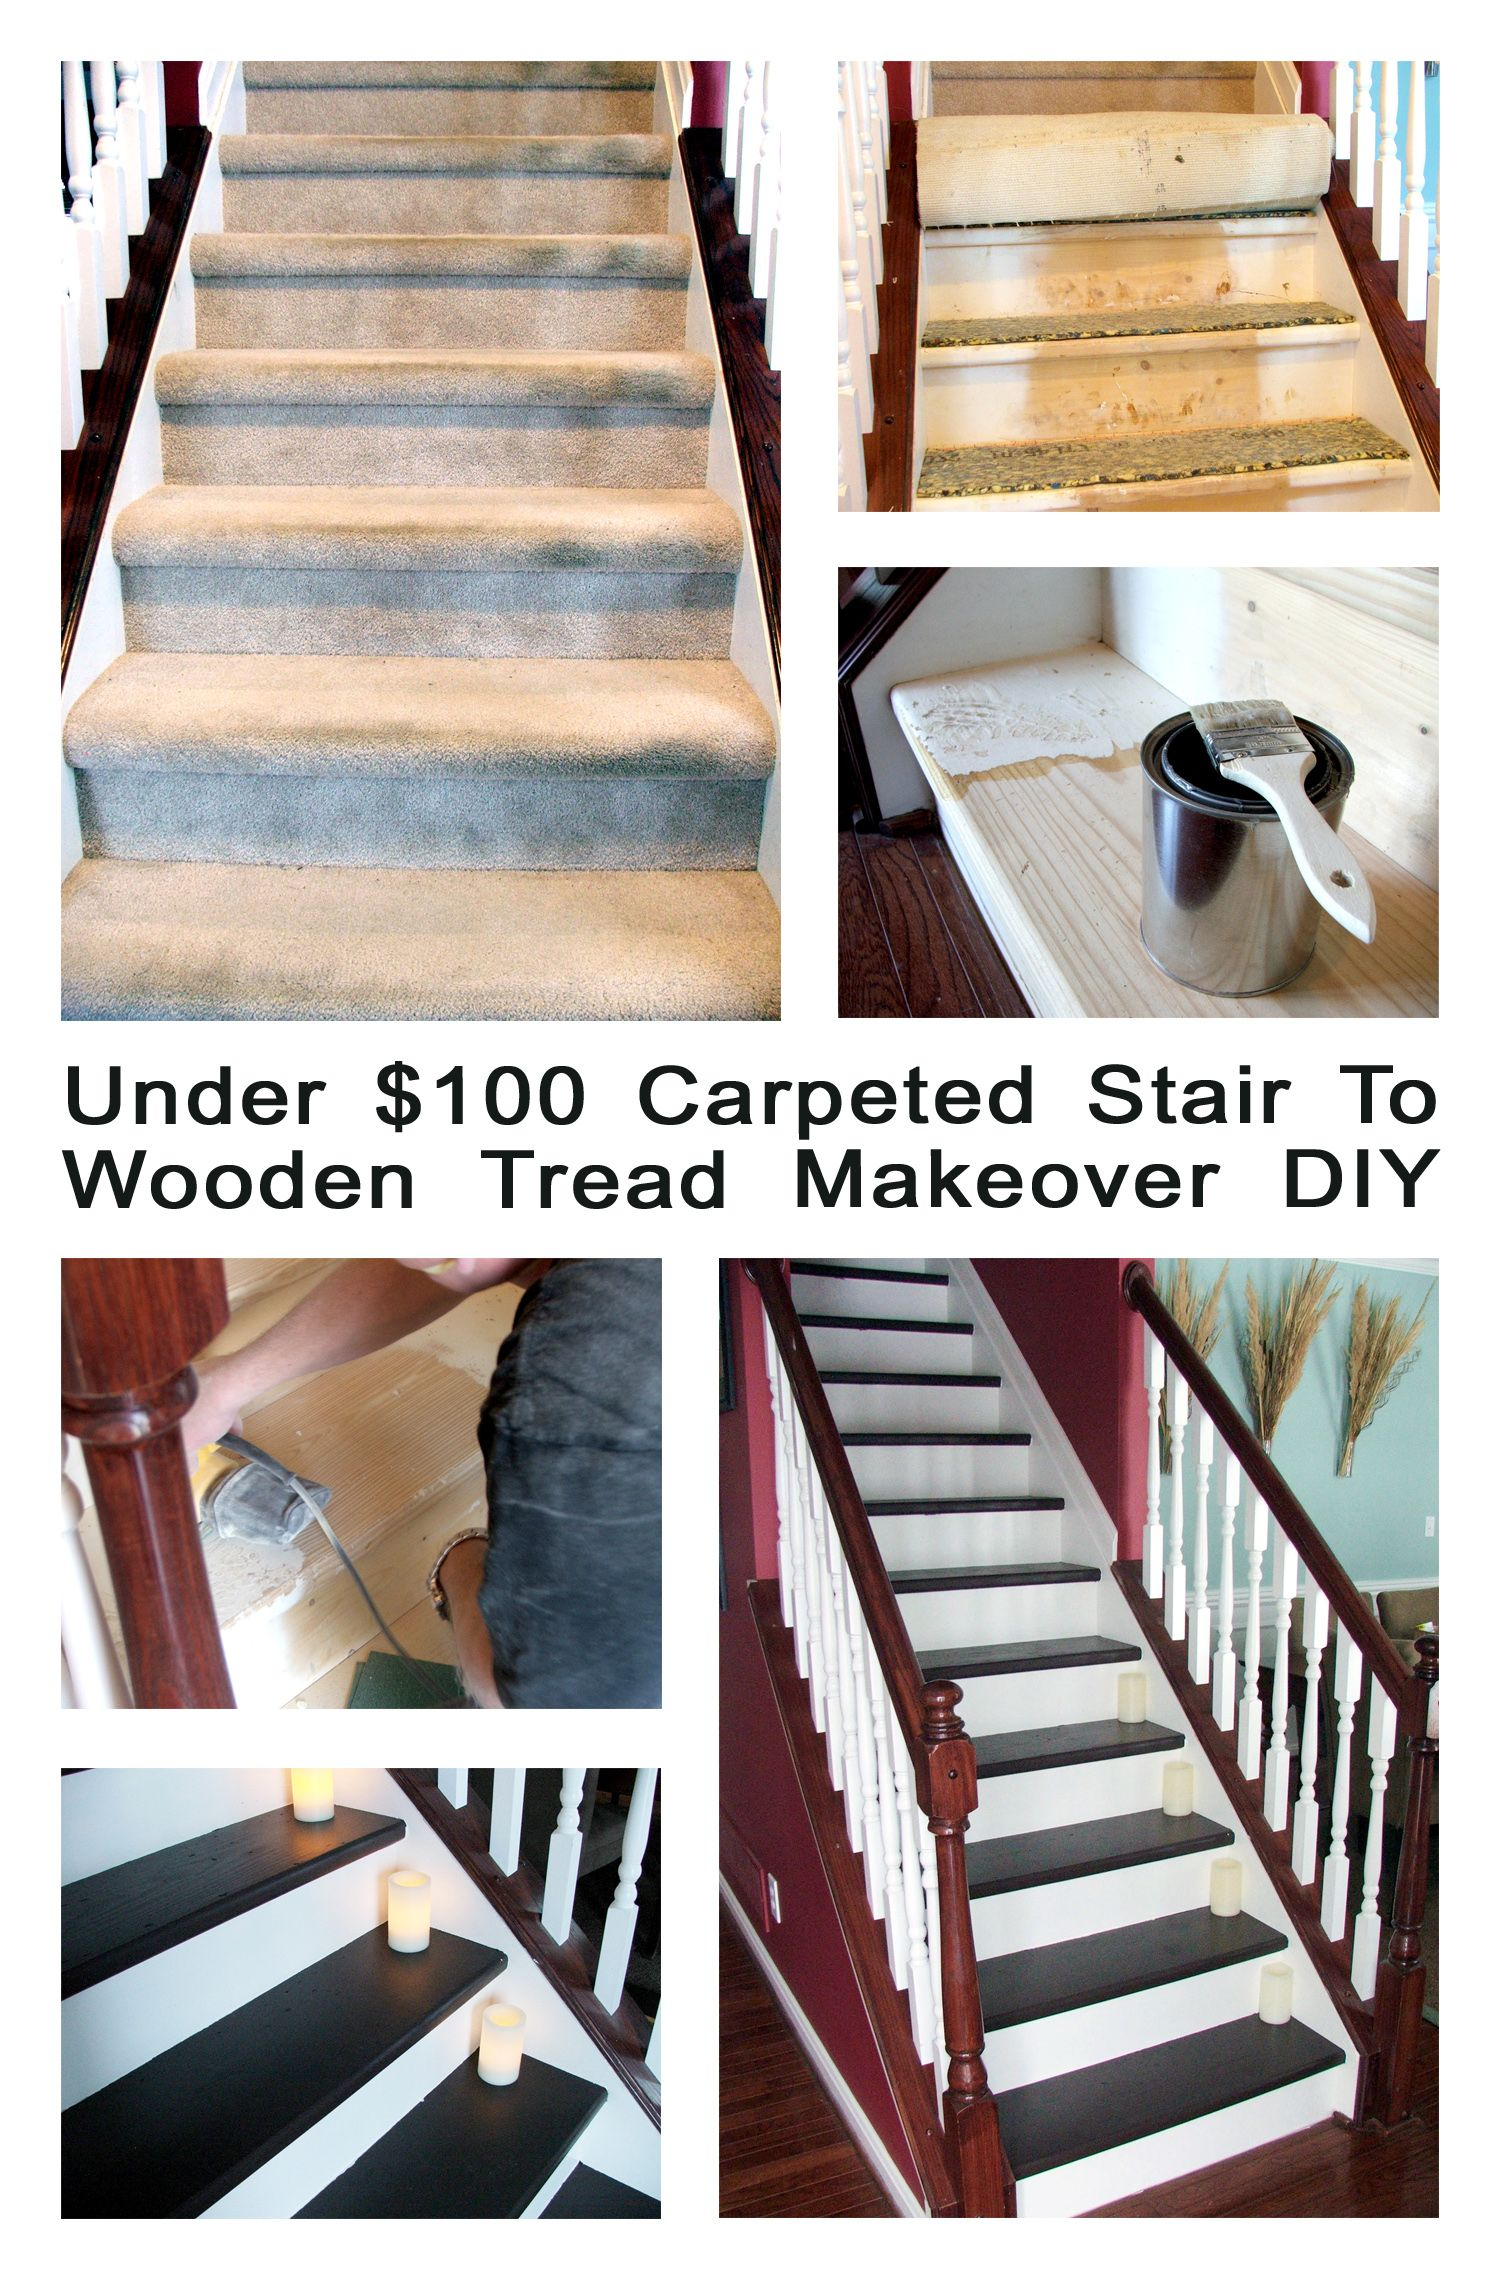 Under 100 Dollar Staircase Makeover Carpet To Wood Treads   Carpet Stairs In The Woods   Wilderness   Open Wooden Stair   Glitter   Country House   Traditional